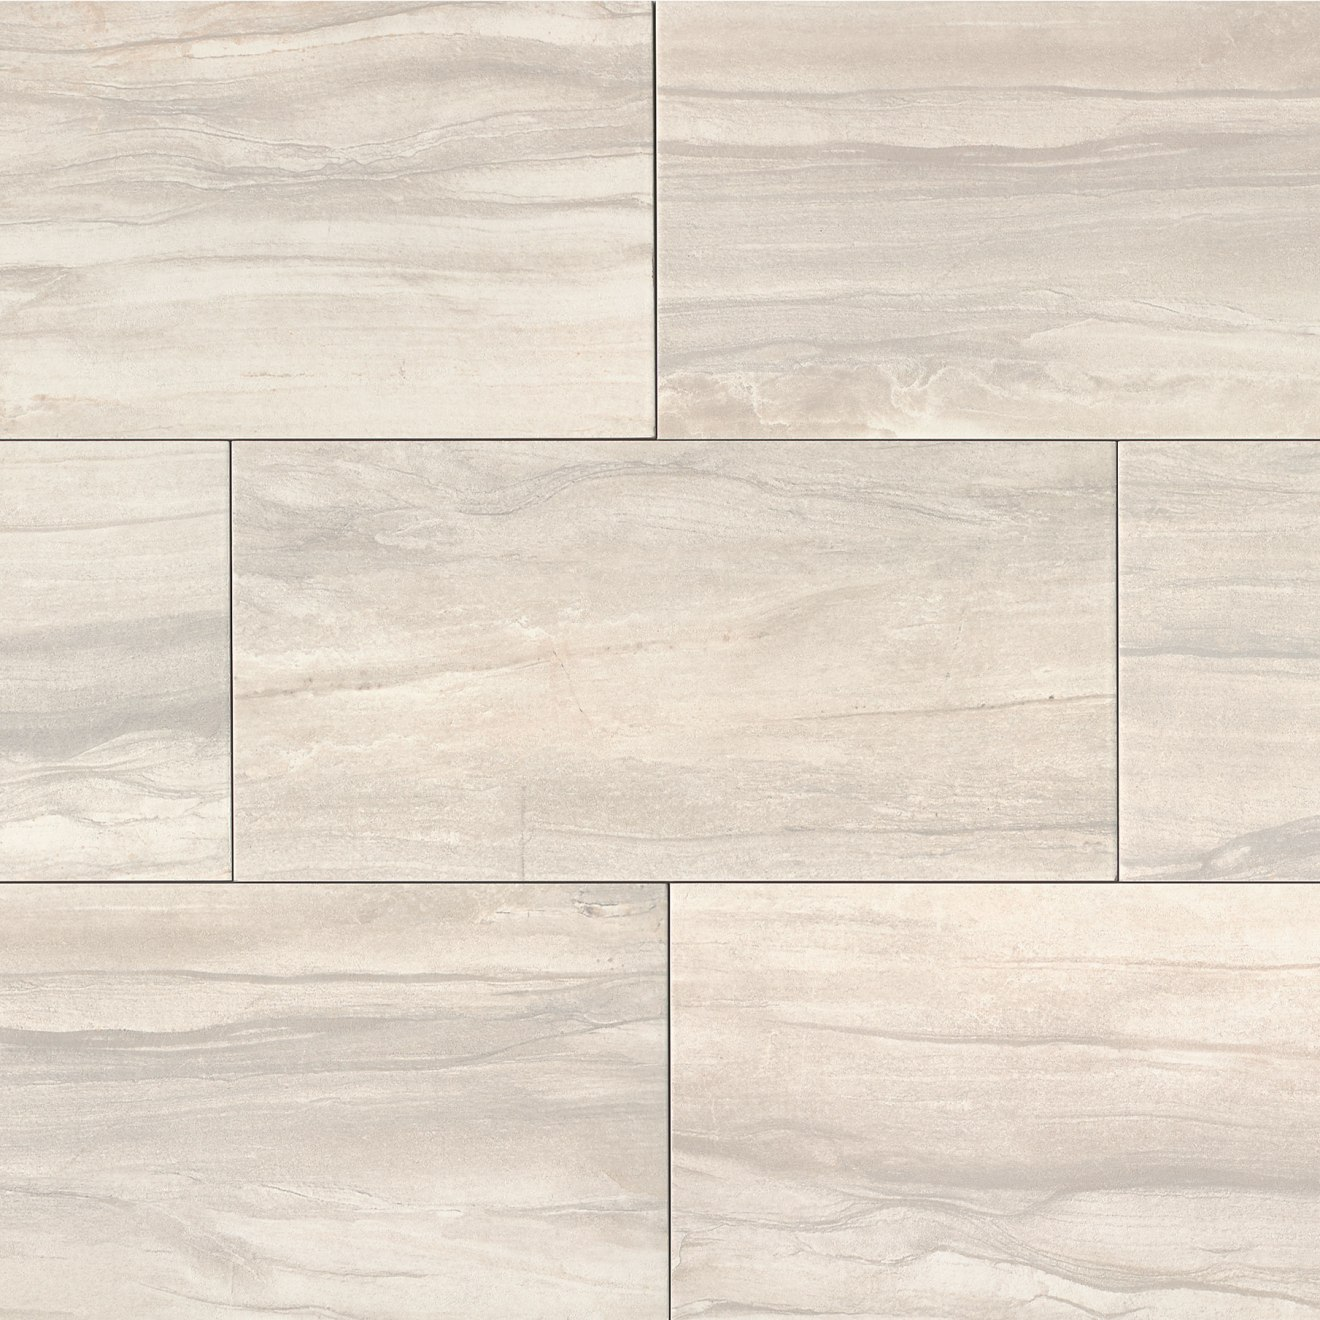 Athena X X Floor And Wall Tile In Pearl - 20 x 20 porcelain tile sale